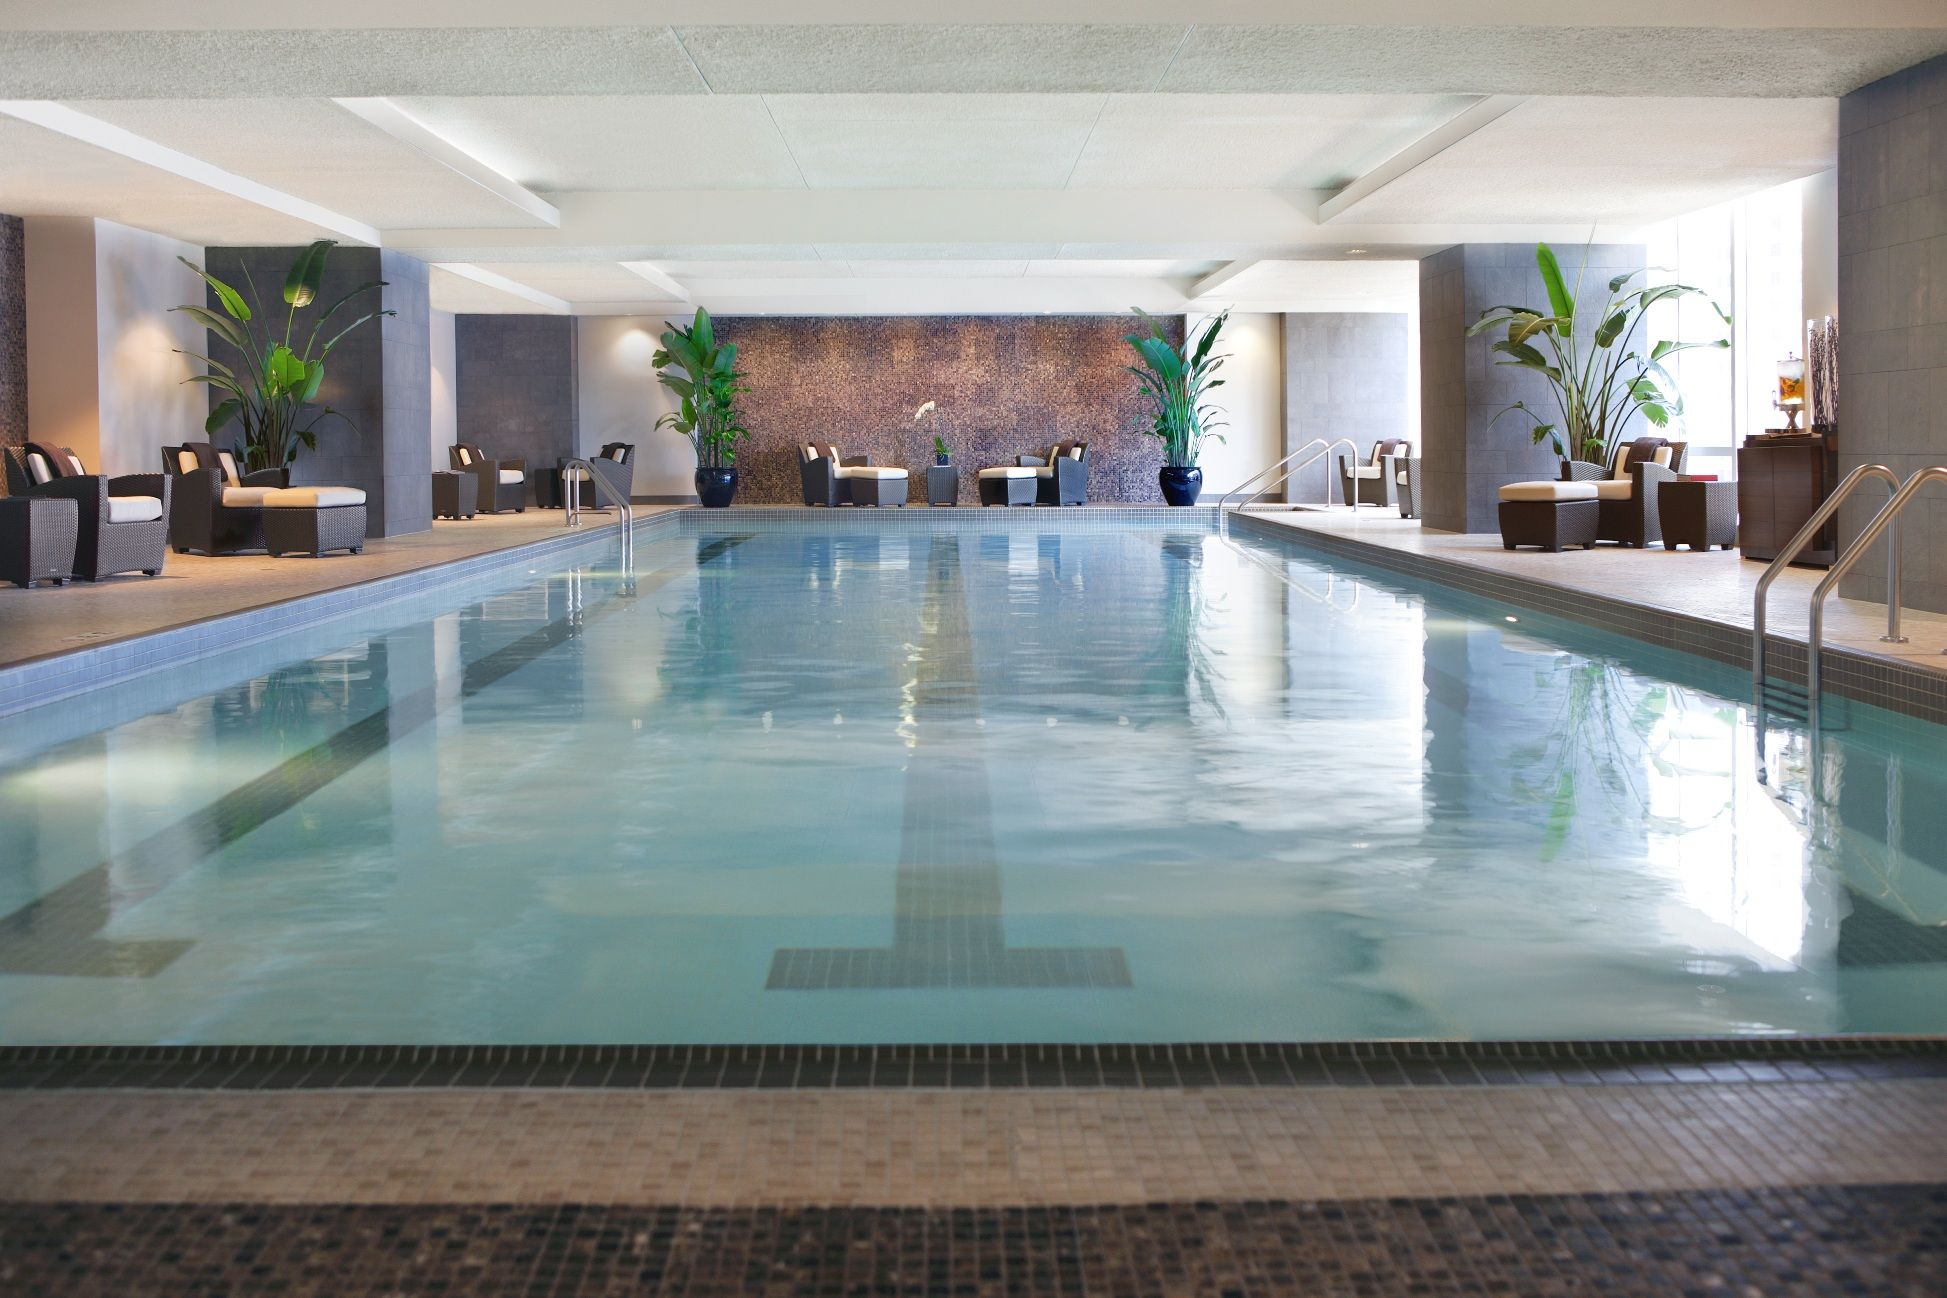 http://www.trumphotelcollection.com Indoor pool at the Trump ...